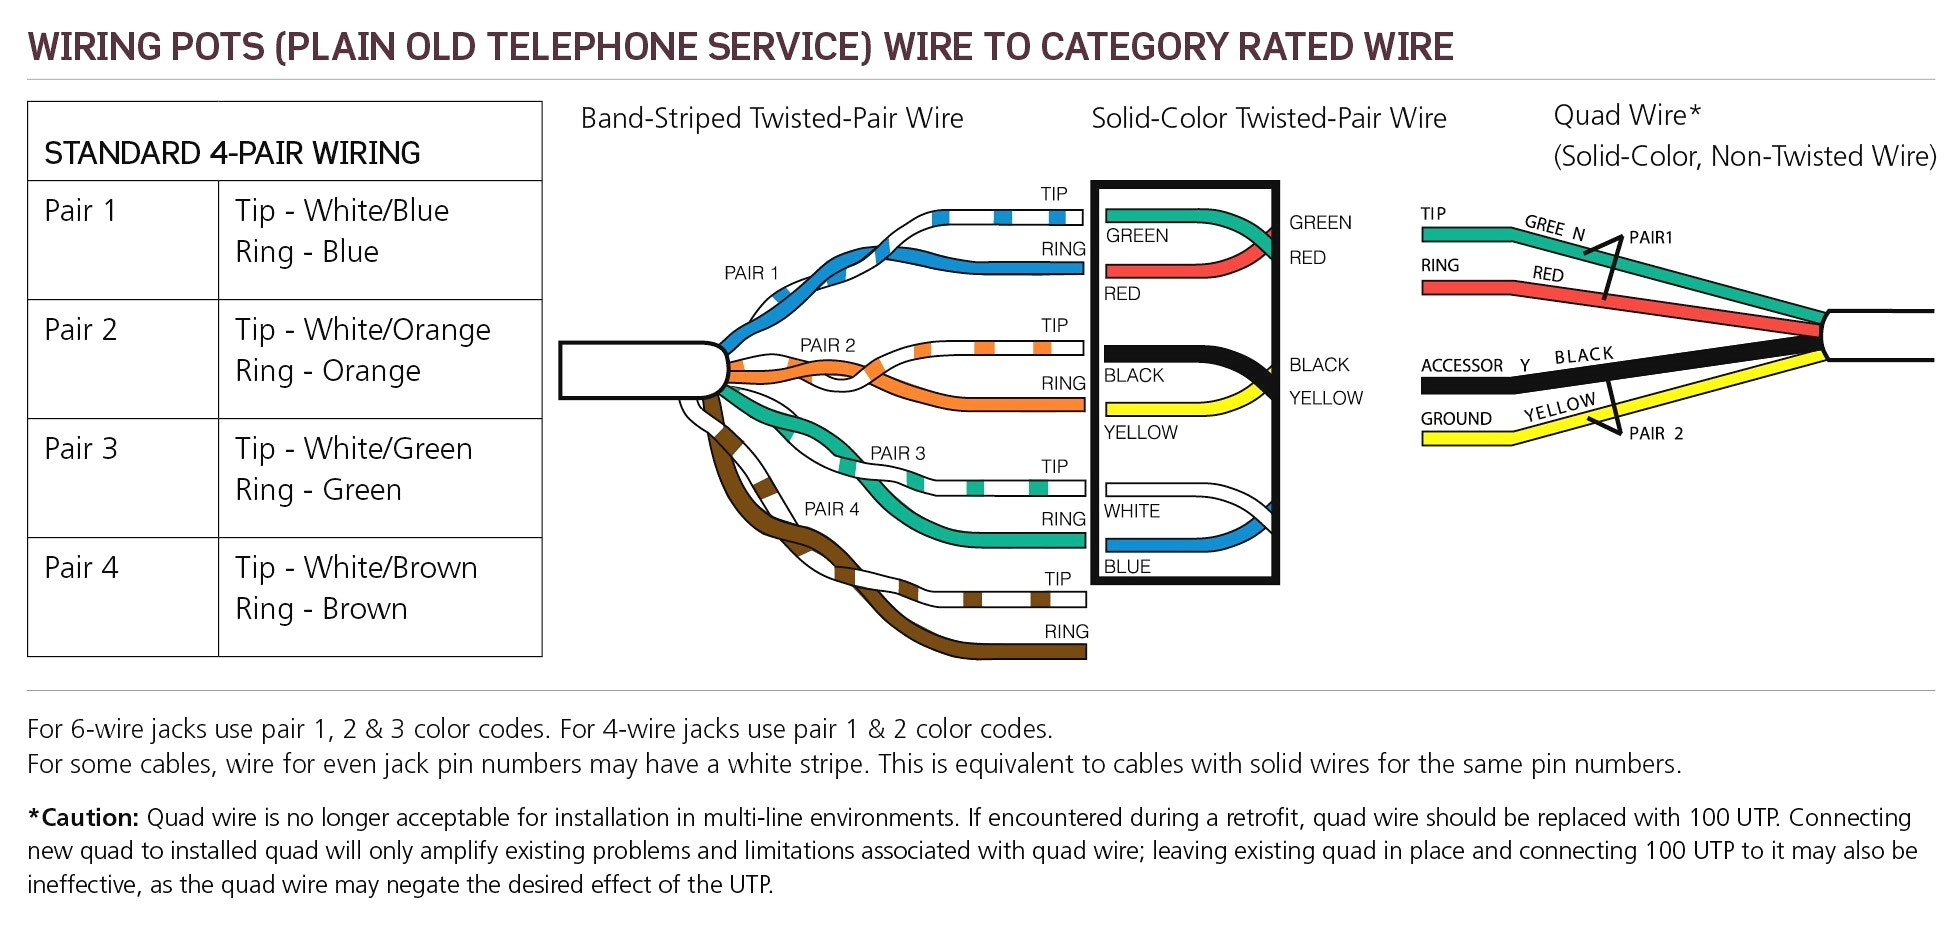 Emejing Ethernet Cable Wire Diagram Gallery For Image Best